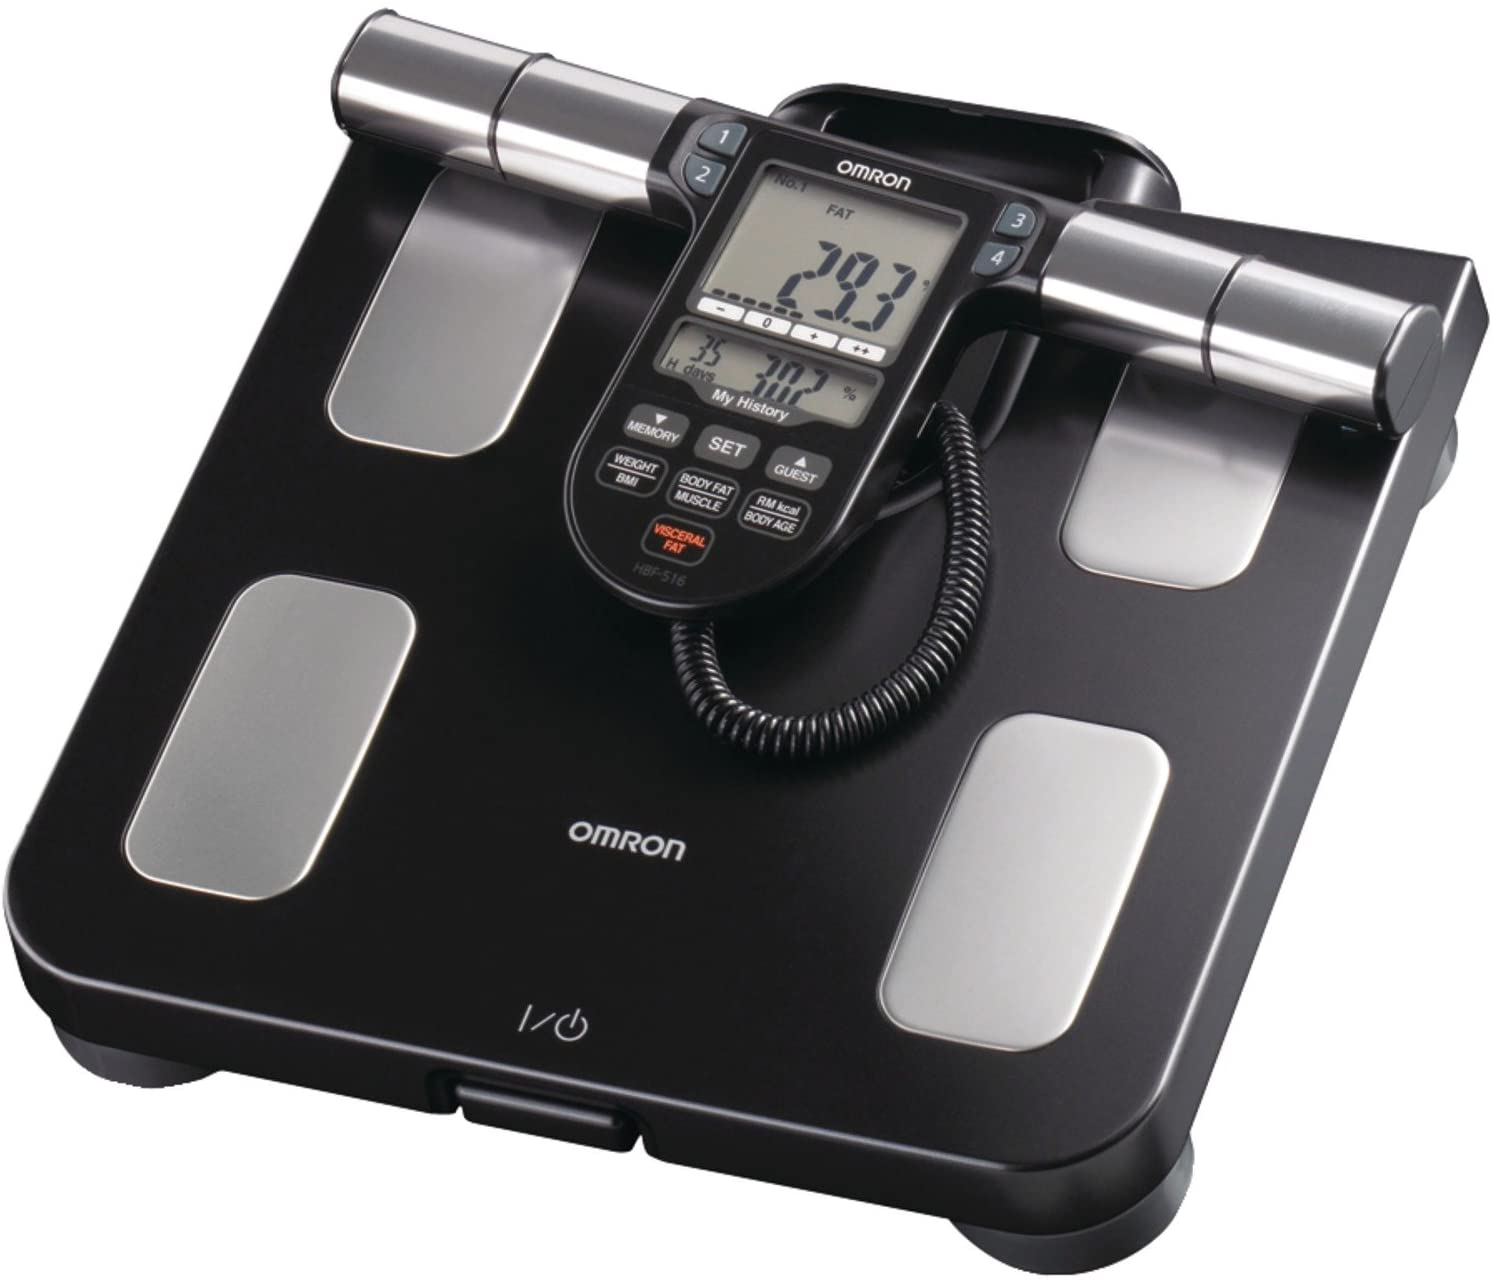 Omron Body Composition Monitor with Scale - 7 Fitness Indicators & 180-Day Memory: Health & Personal Care